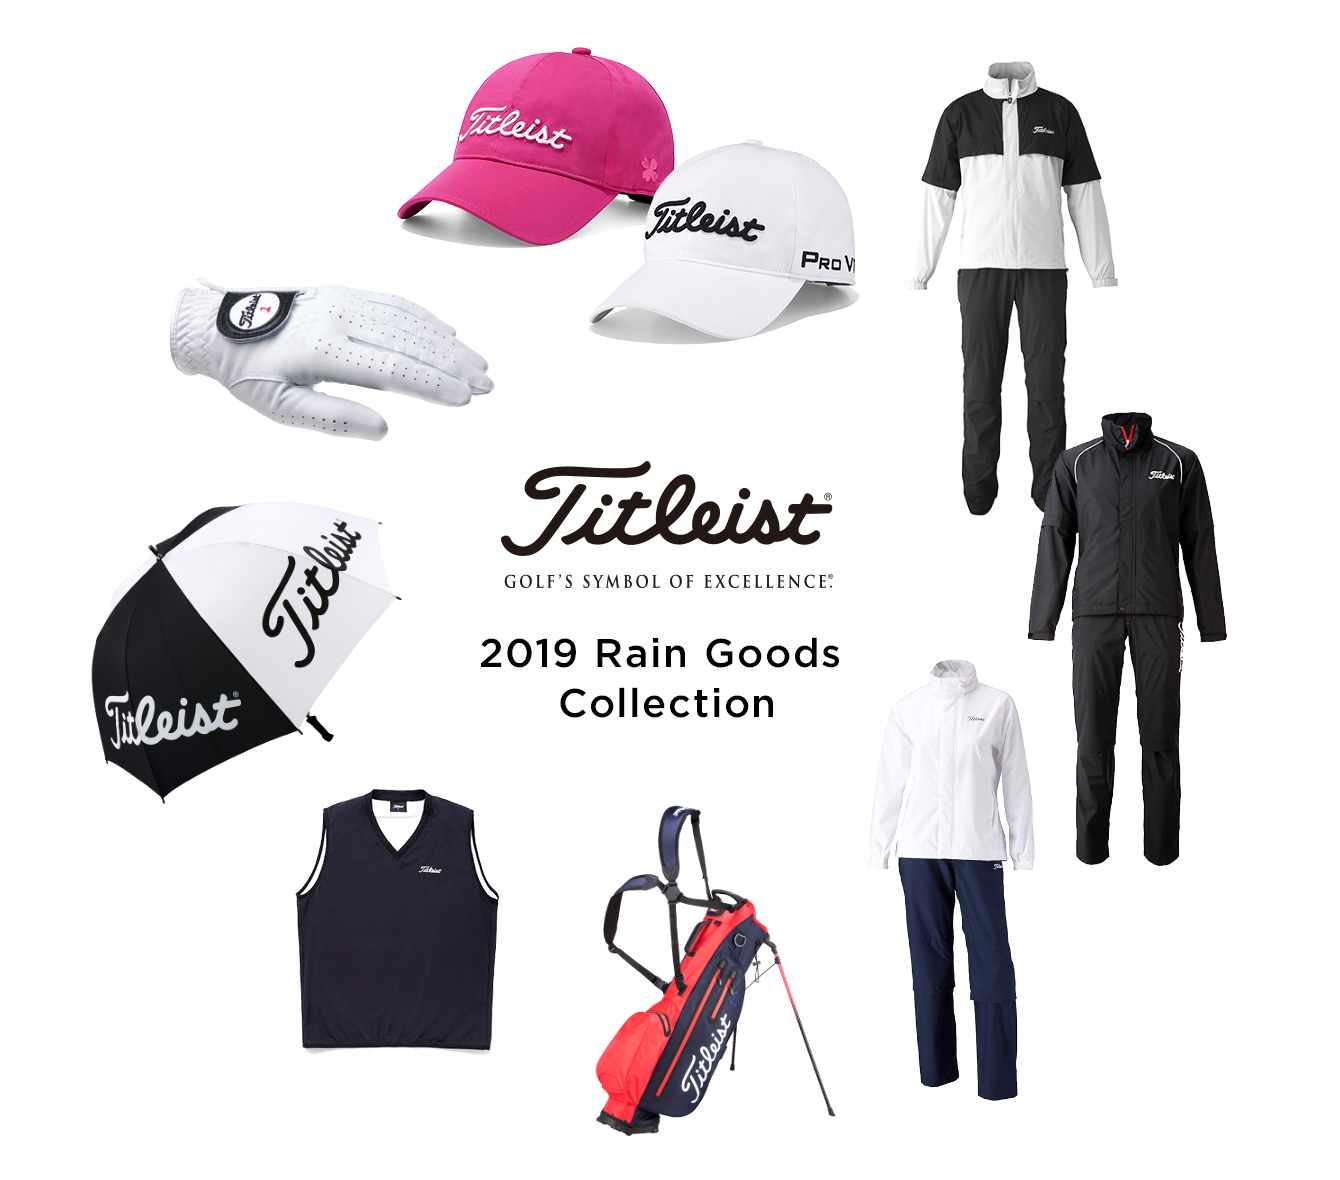 2019 Rain Goods Collection